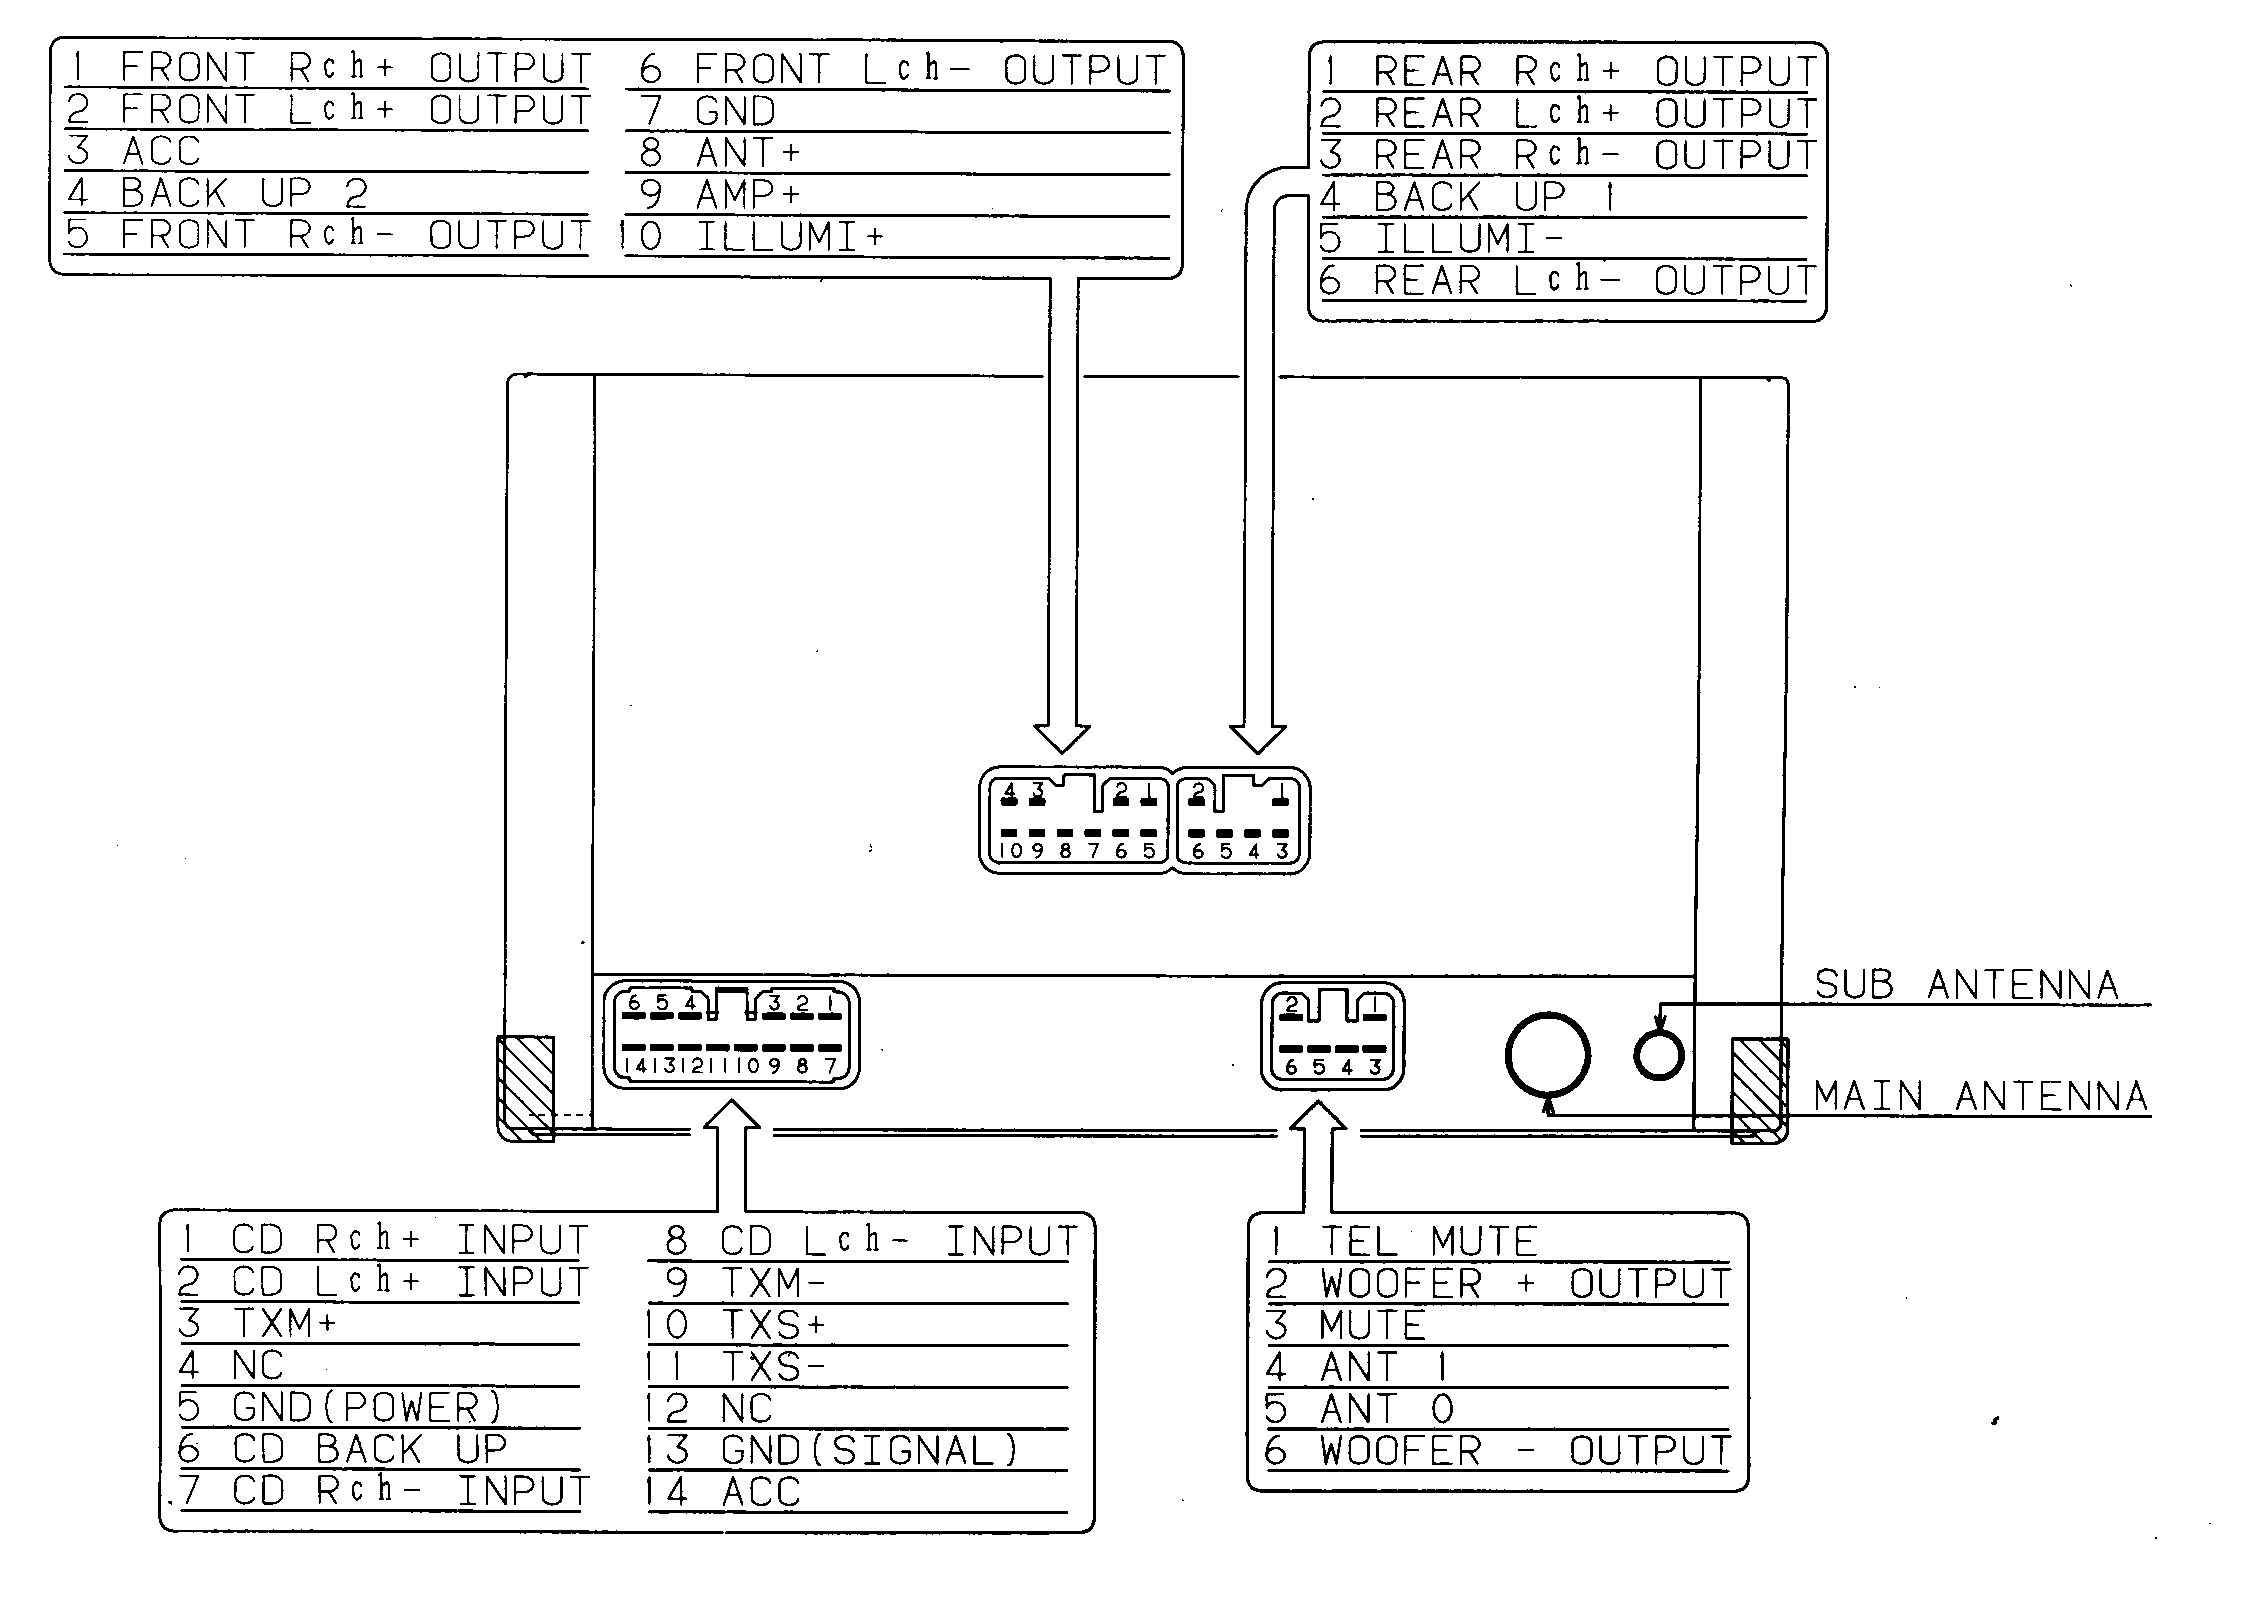 WireHarnessLexus121001 car audio wire diagram codes lexus factory car stereo repair  at bayanpartner.co